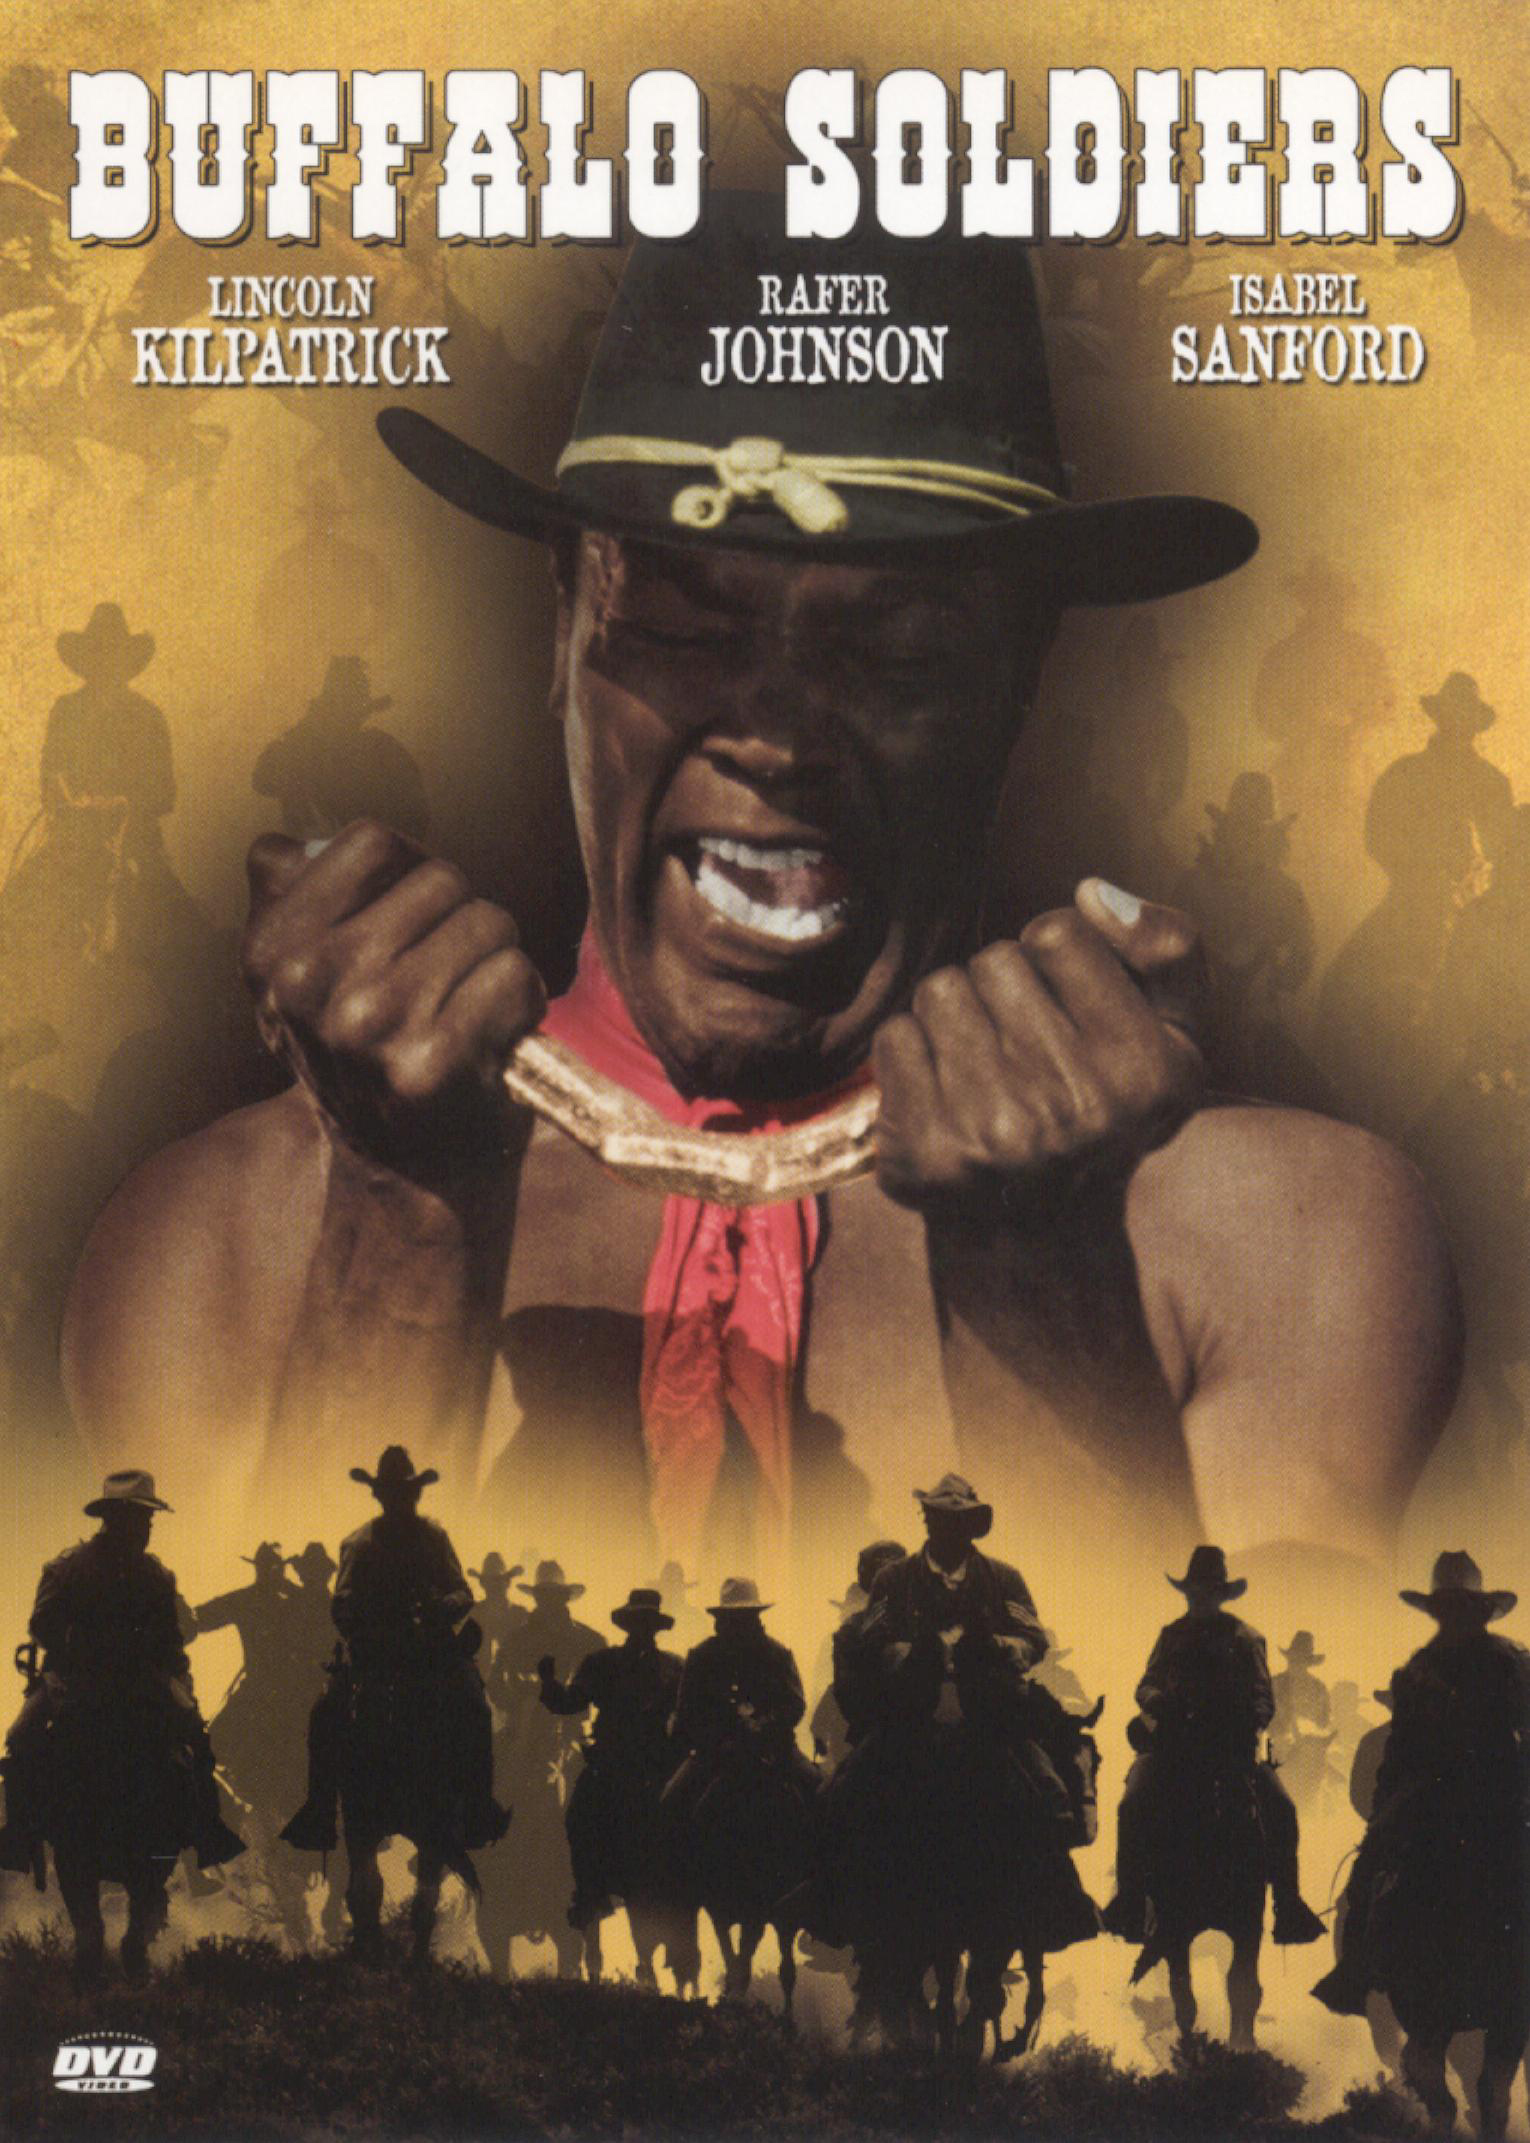 The Buffalo Soldiers